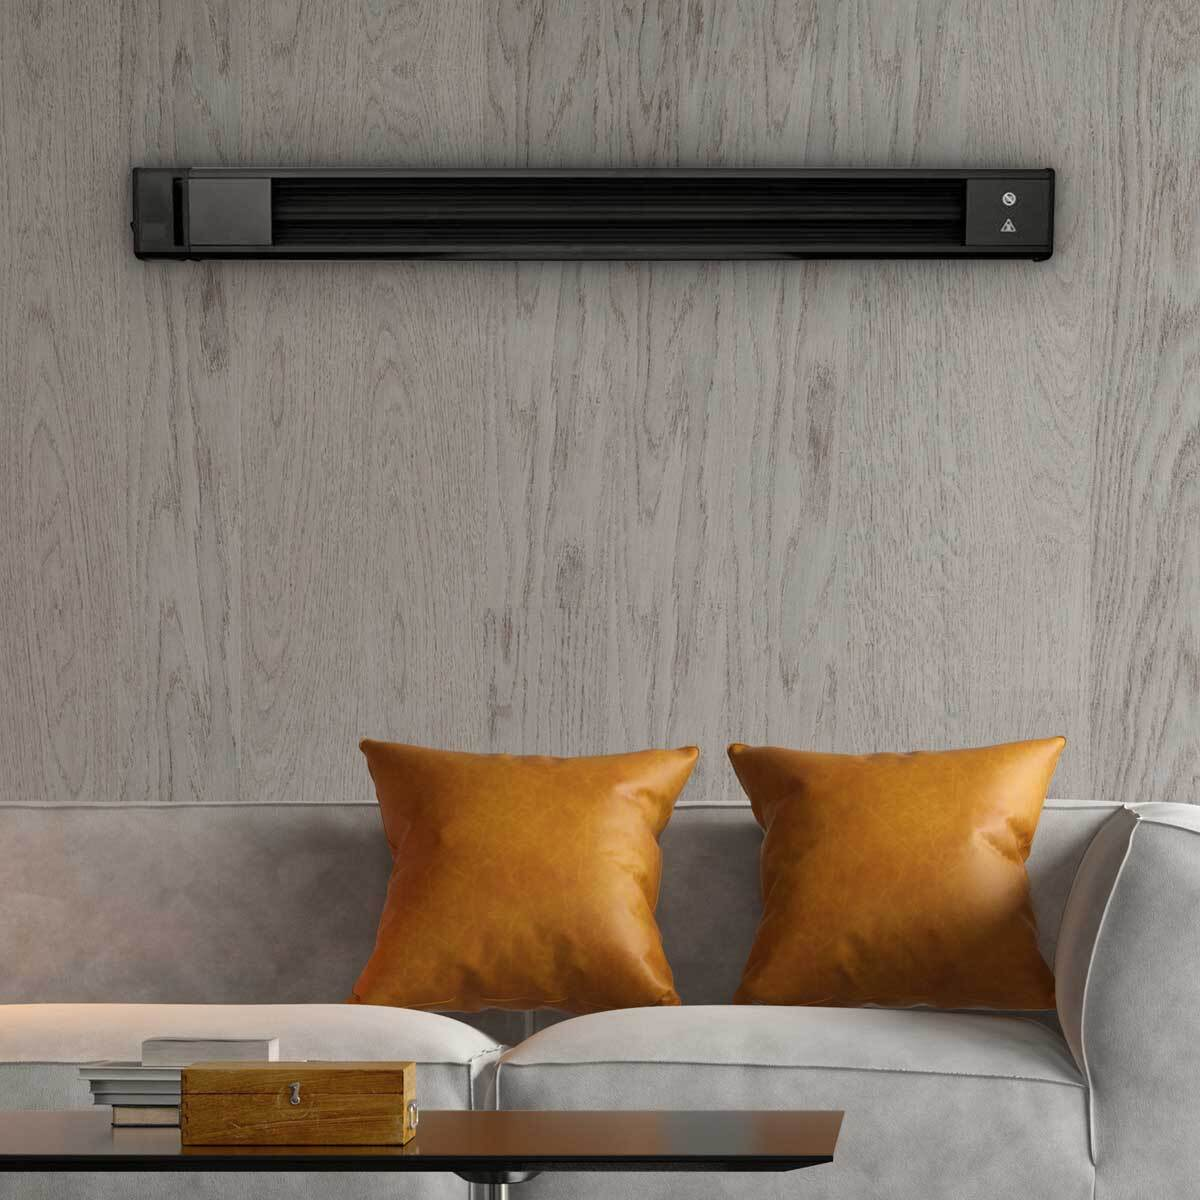 ecostrad Thermostrip on wall